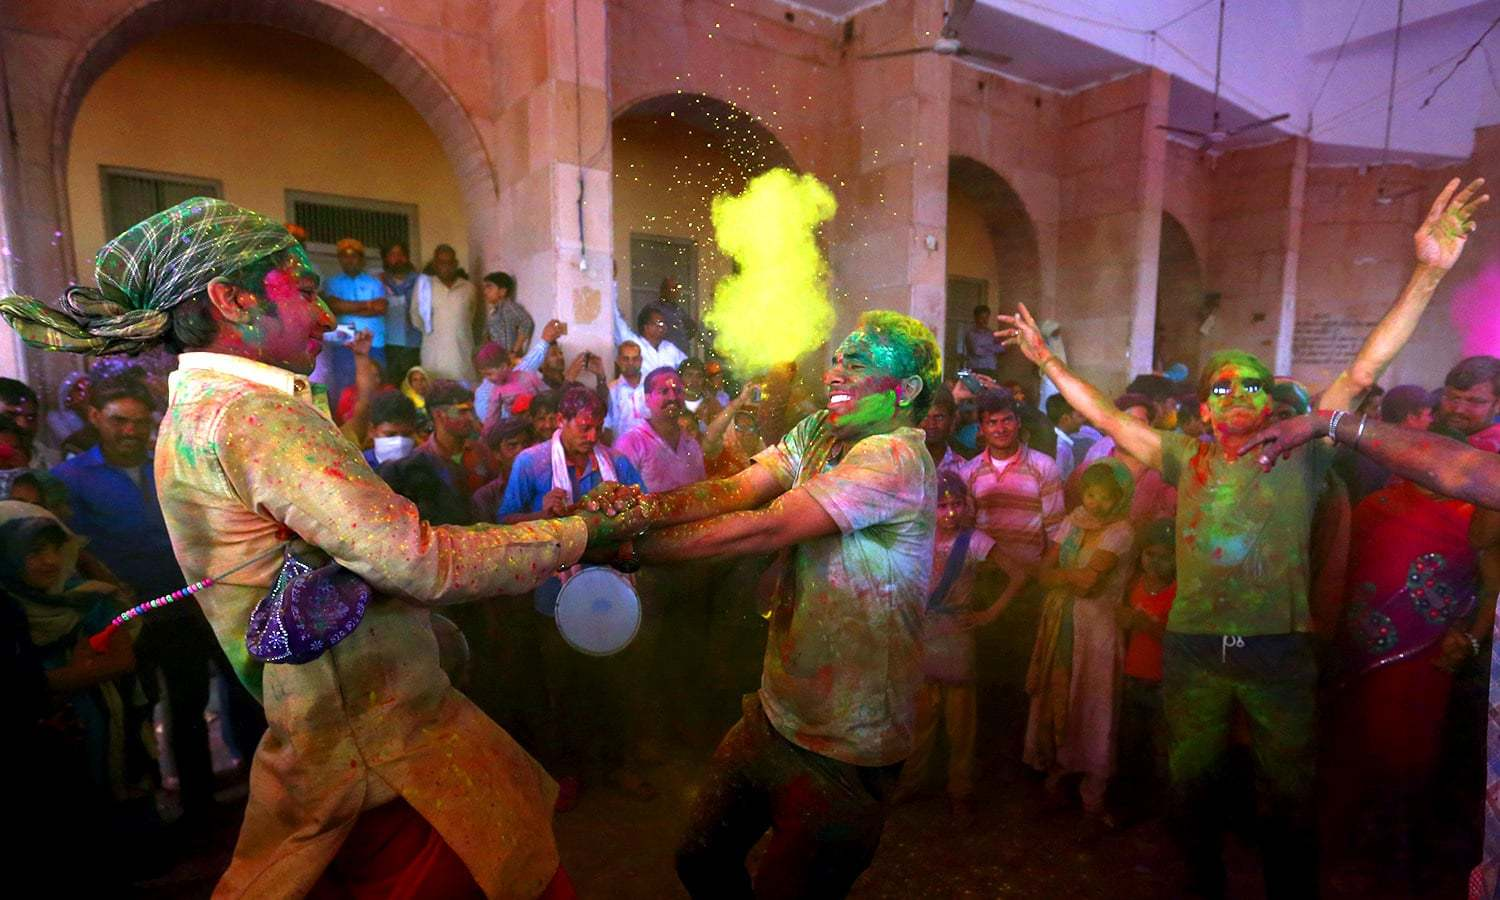 In a first, Sindh declares public holiday on Holi